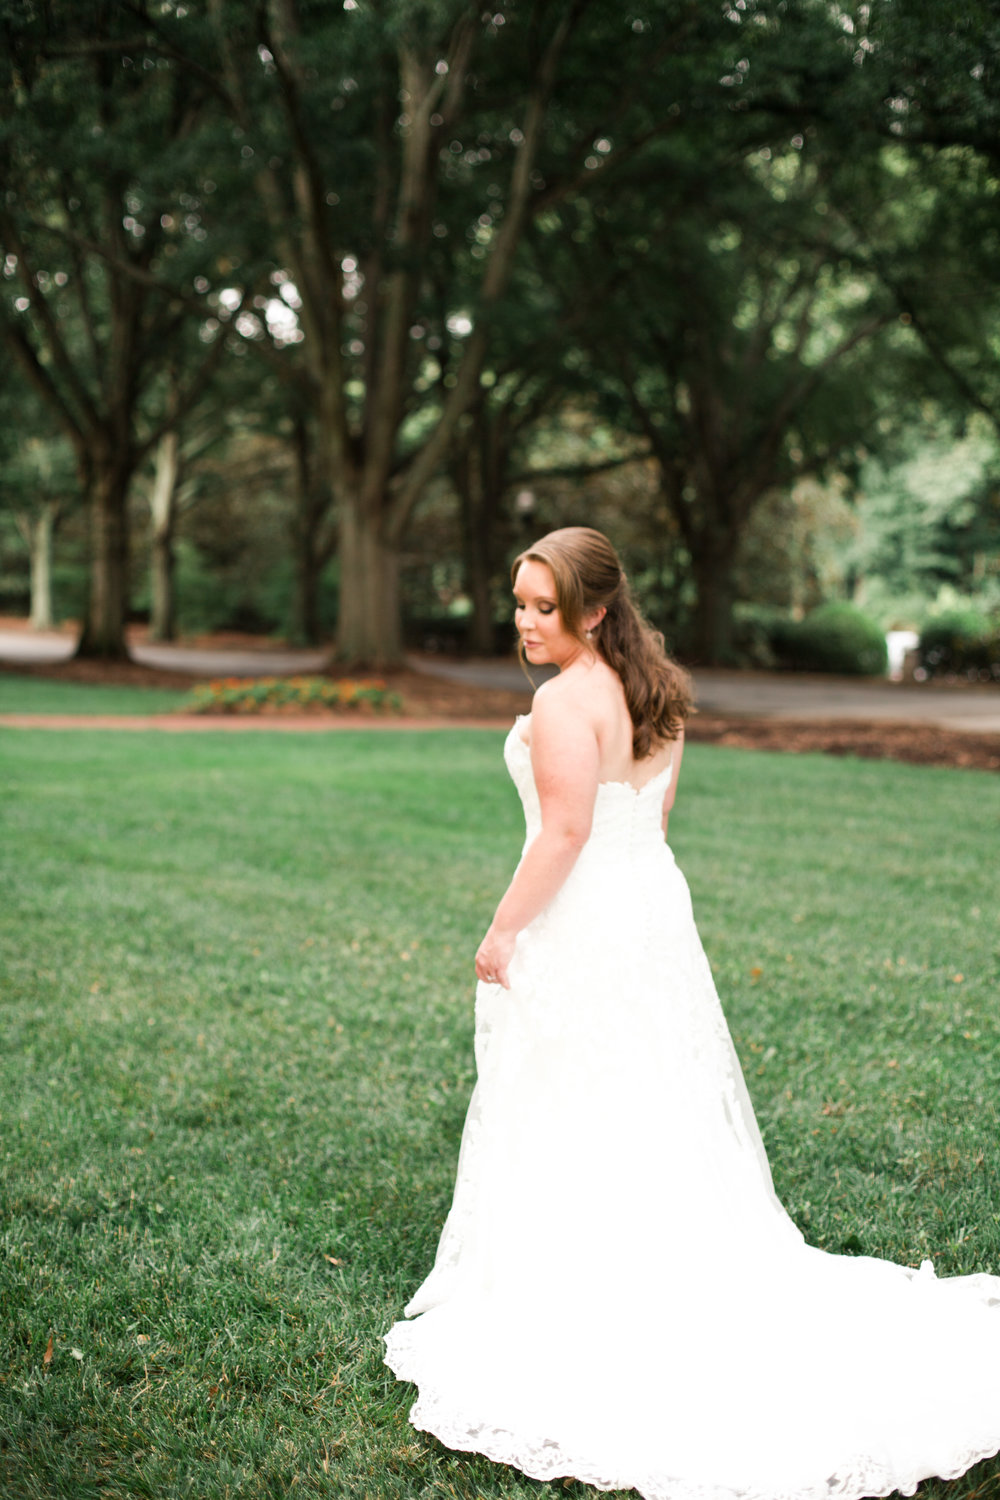 gabbie_bridal_poured_out_photography-41.jpg